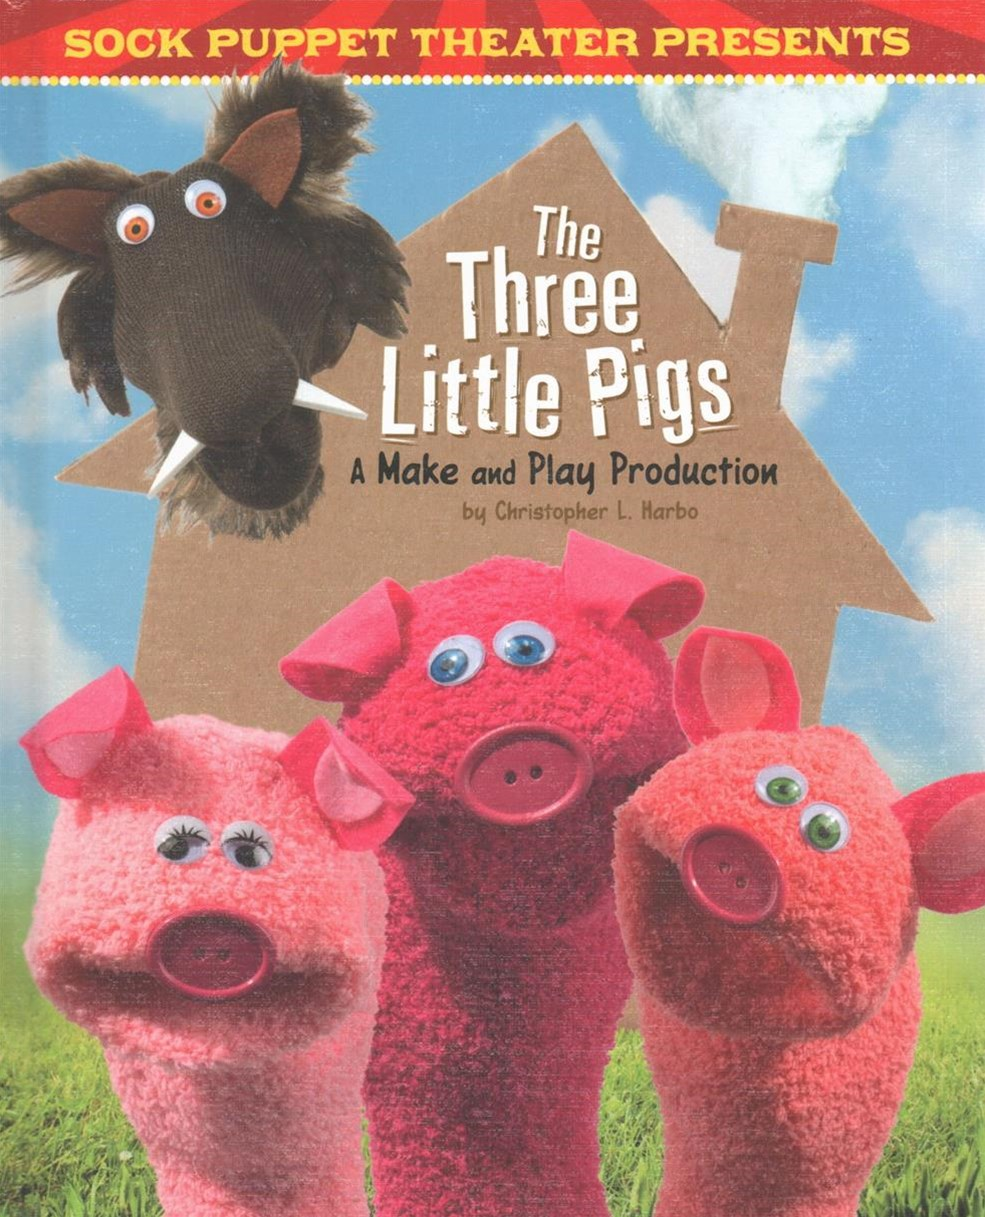 Sock Puppet Theater: Sock Puppet Theater Presents The Three Little Pigs